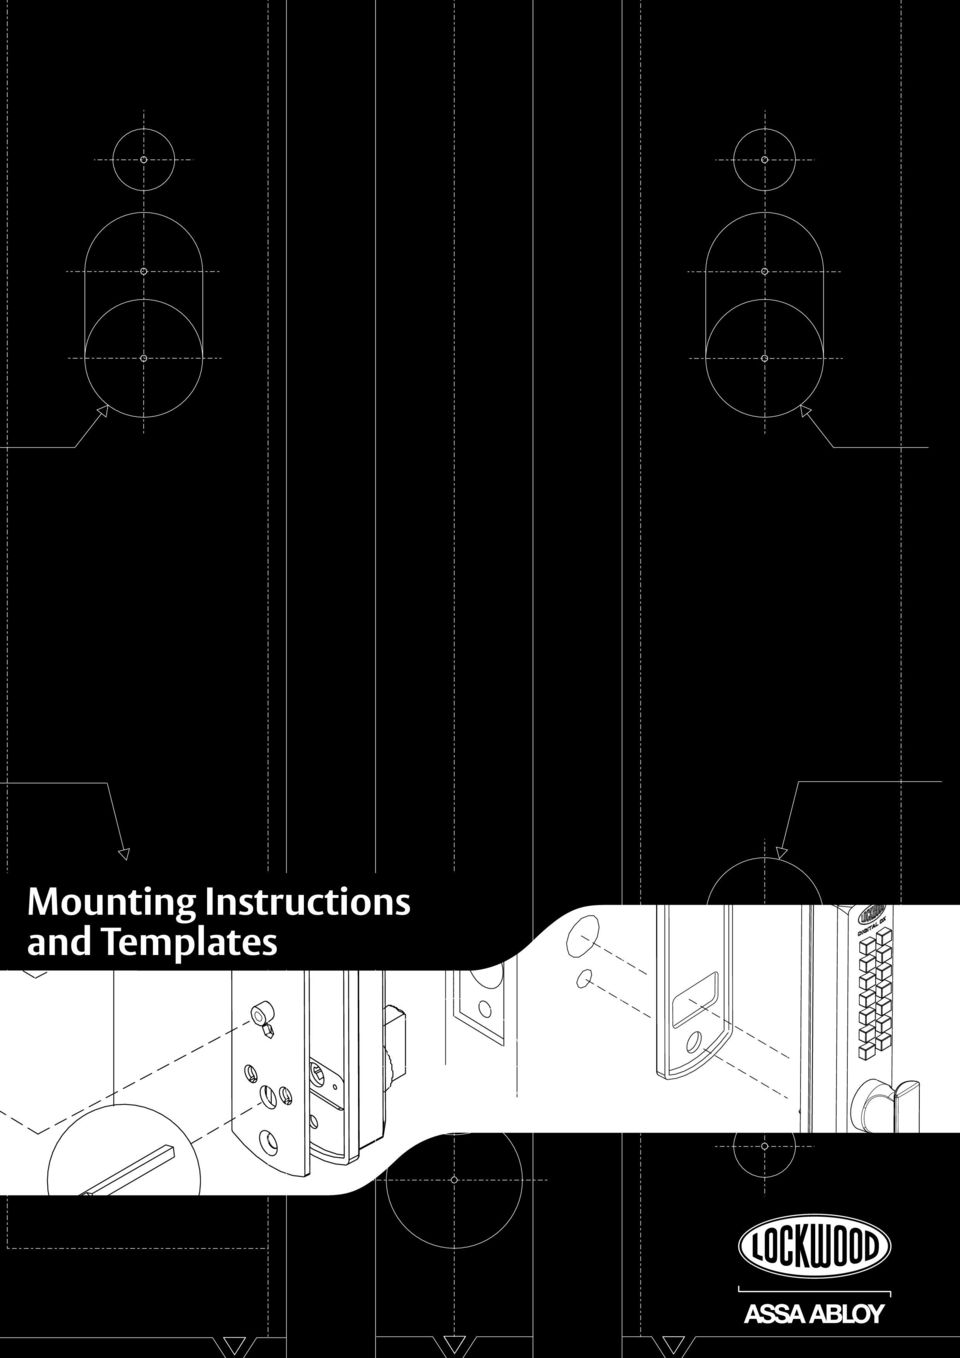 Dx Mechanical Digital Door Locks Service Manual Assa Abloy The Diagram How To Replace A Defective Sliding Latch Ford Series Entrance Set Metal Thread Mounting Screws Lock Position Interior Furniture Plate Seal 1 Install Spindle